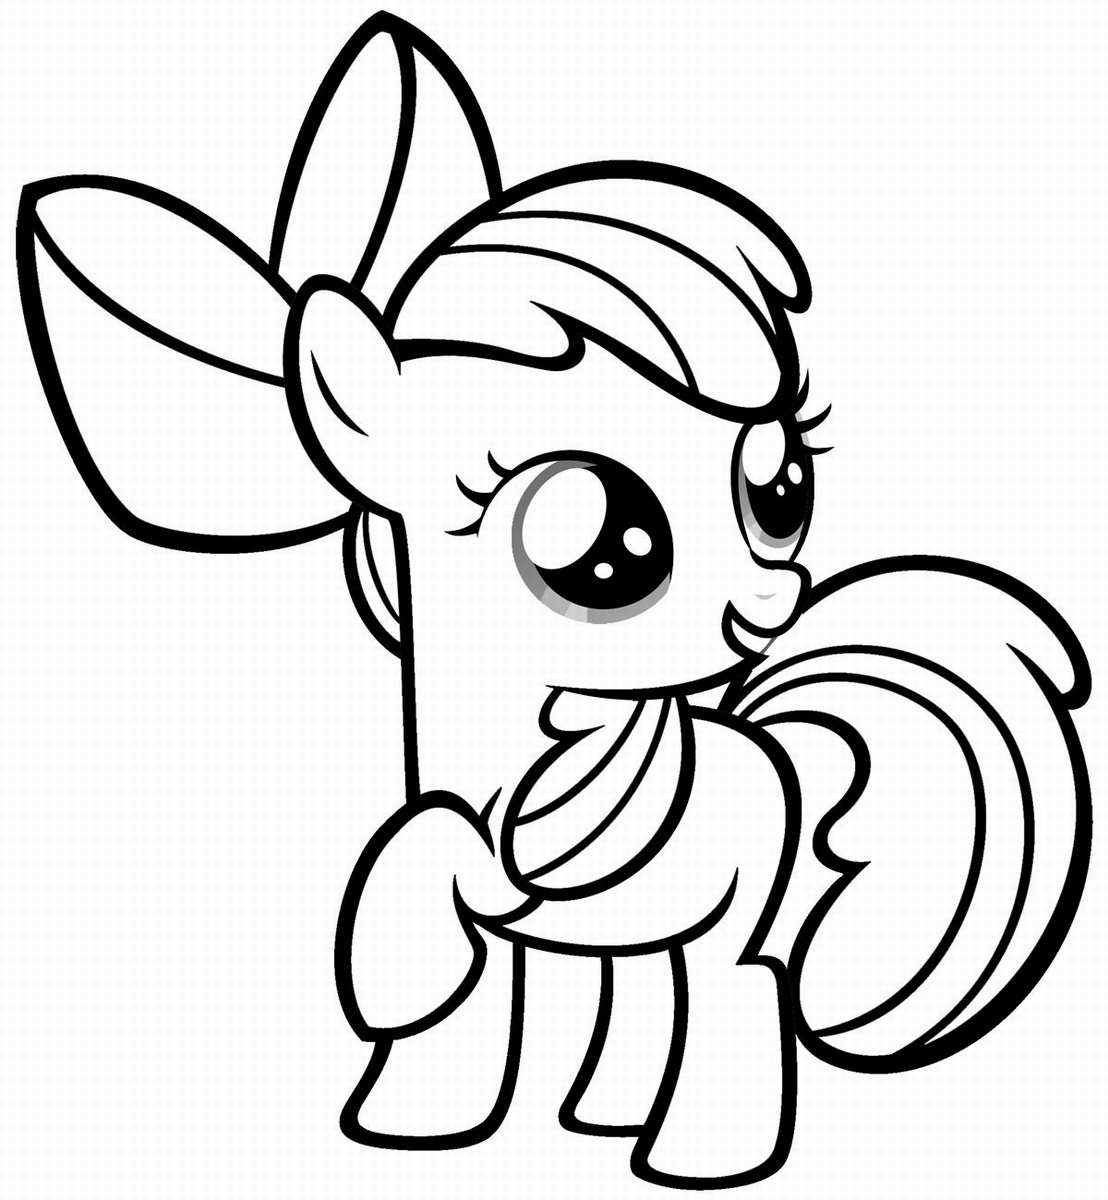 my little pony coloring pages my little pony coloring pages for girls print for free or pony coloring my little pages